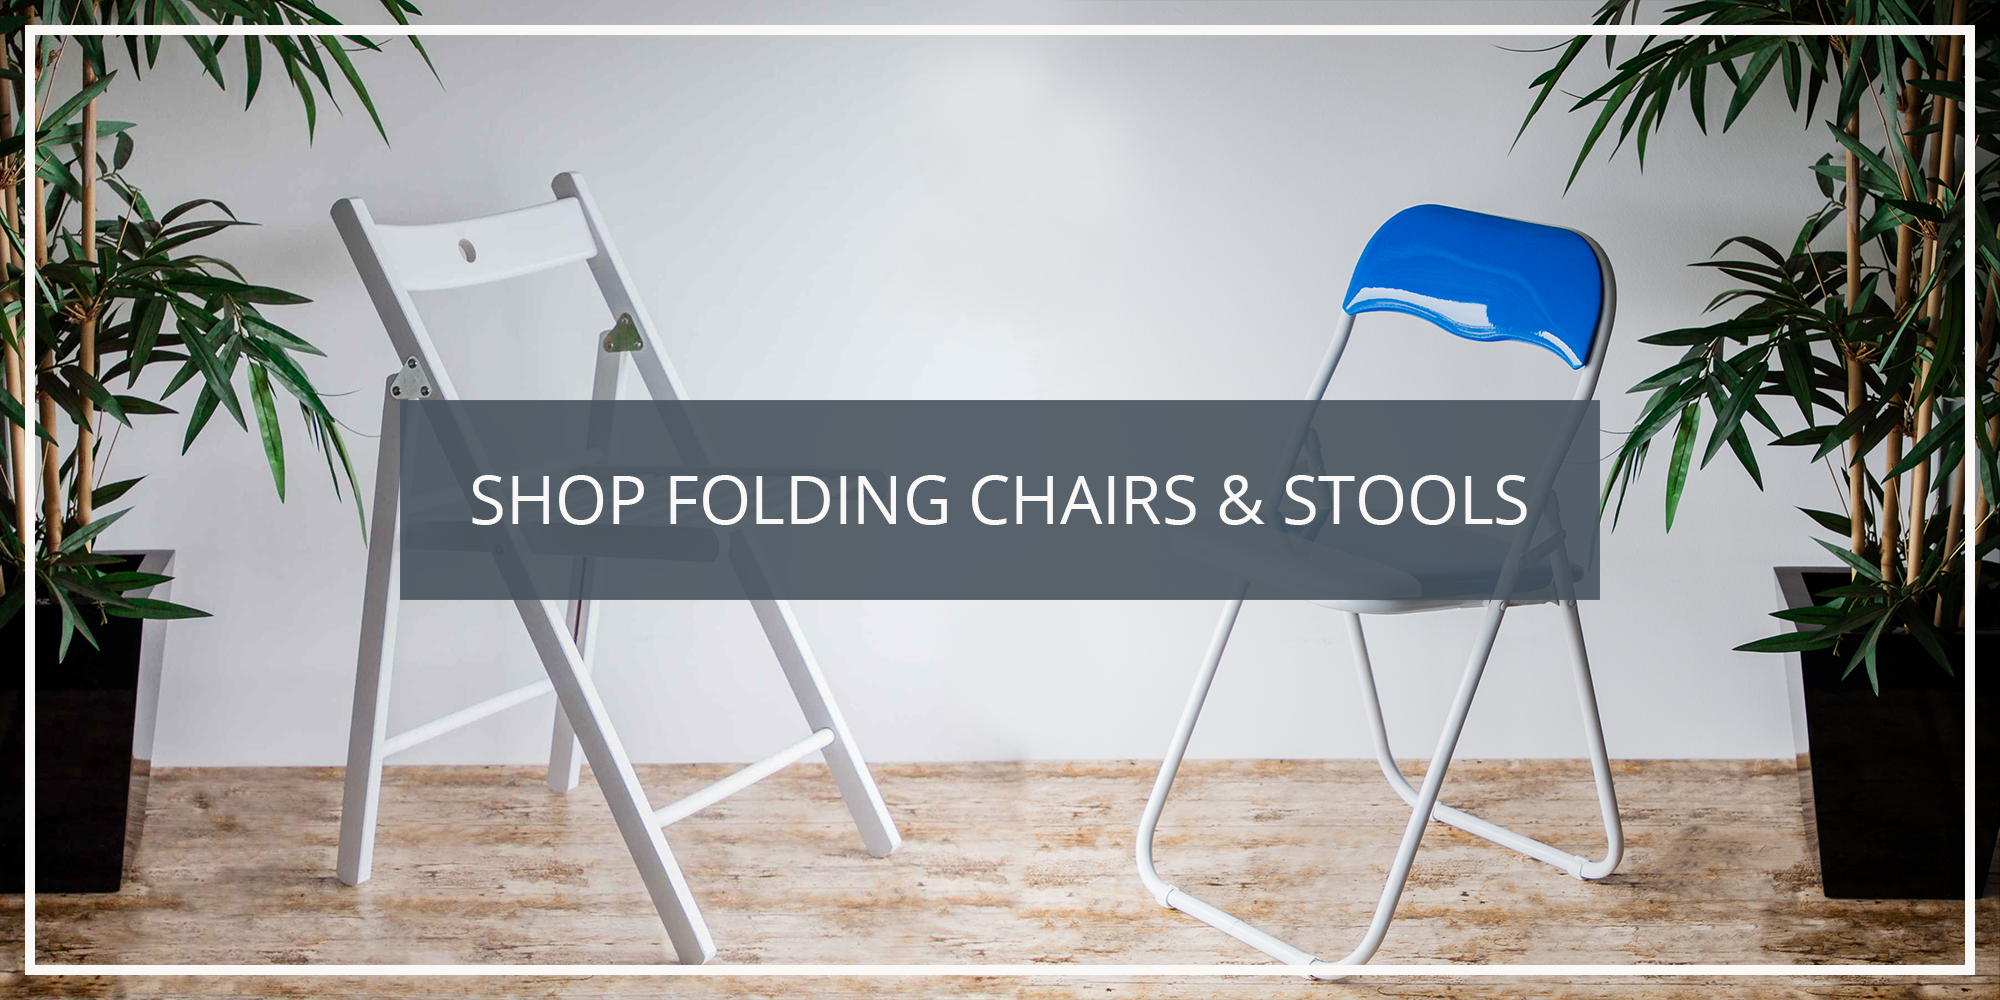 Shop the Harbour Housewares Collection of Folding Chairs and Stools